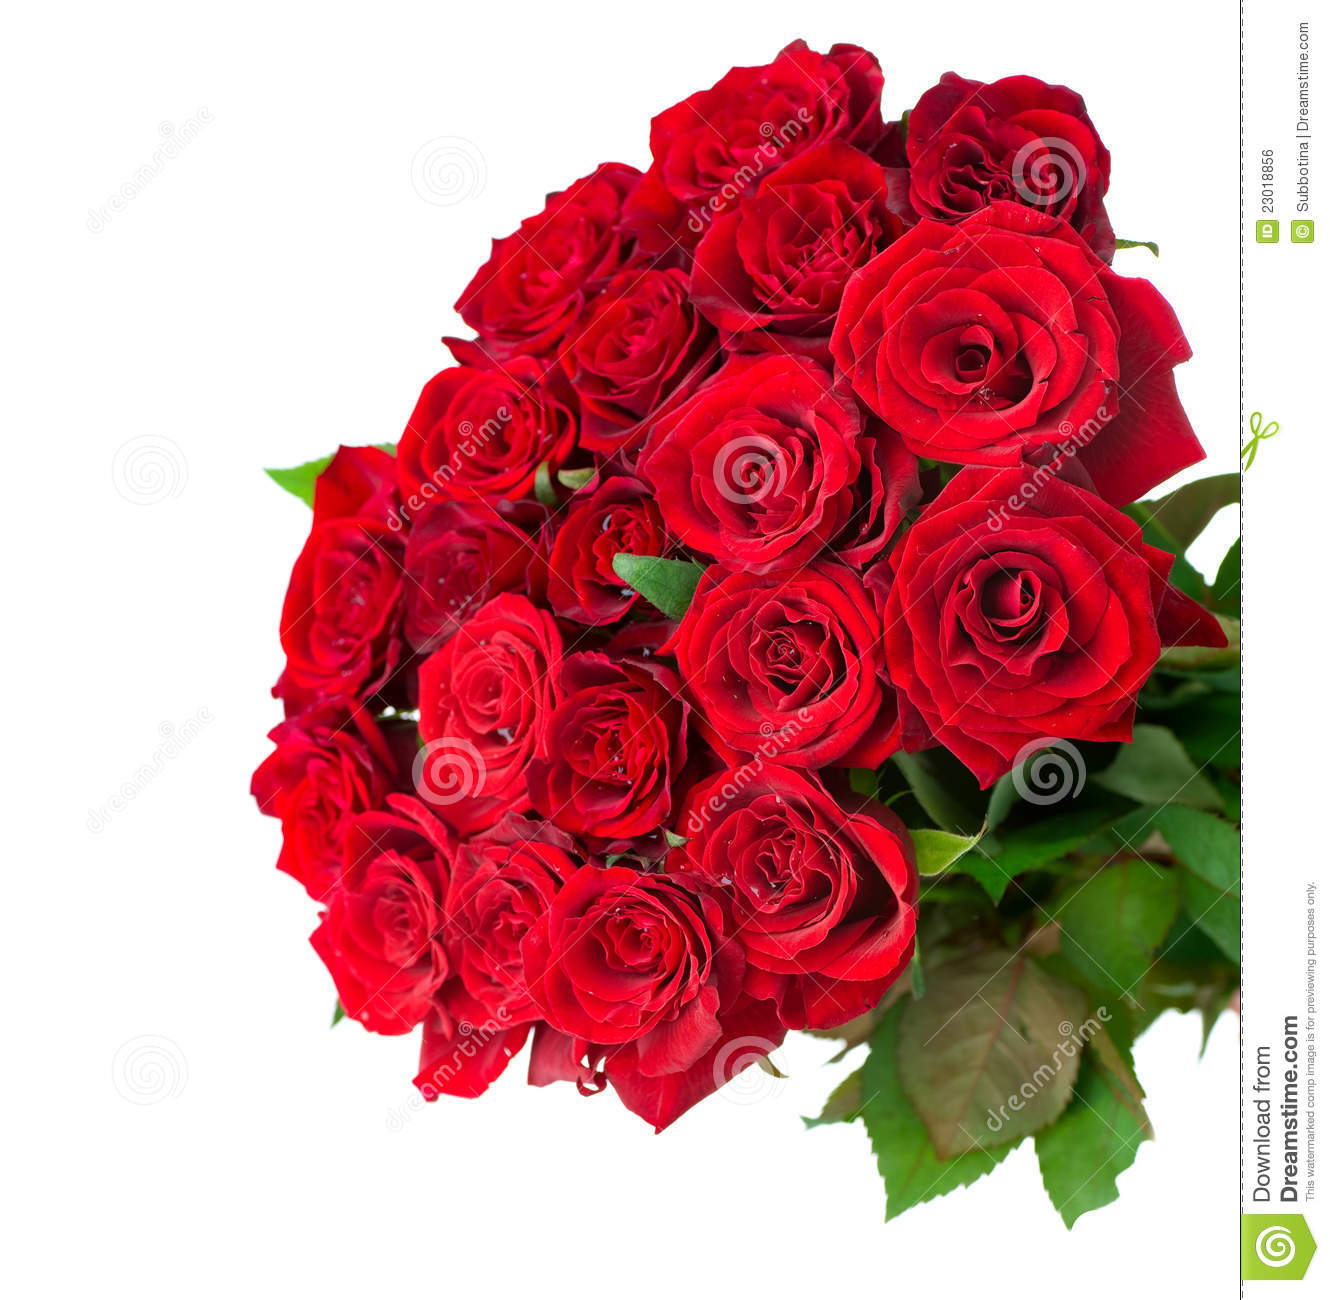 Rose Flower: Rose Flower Bouquets